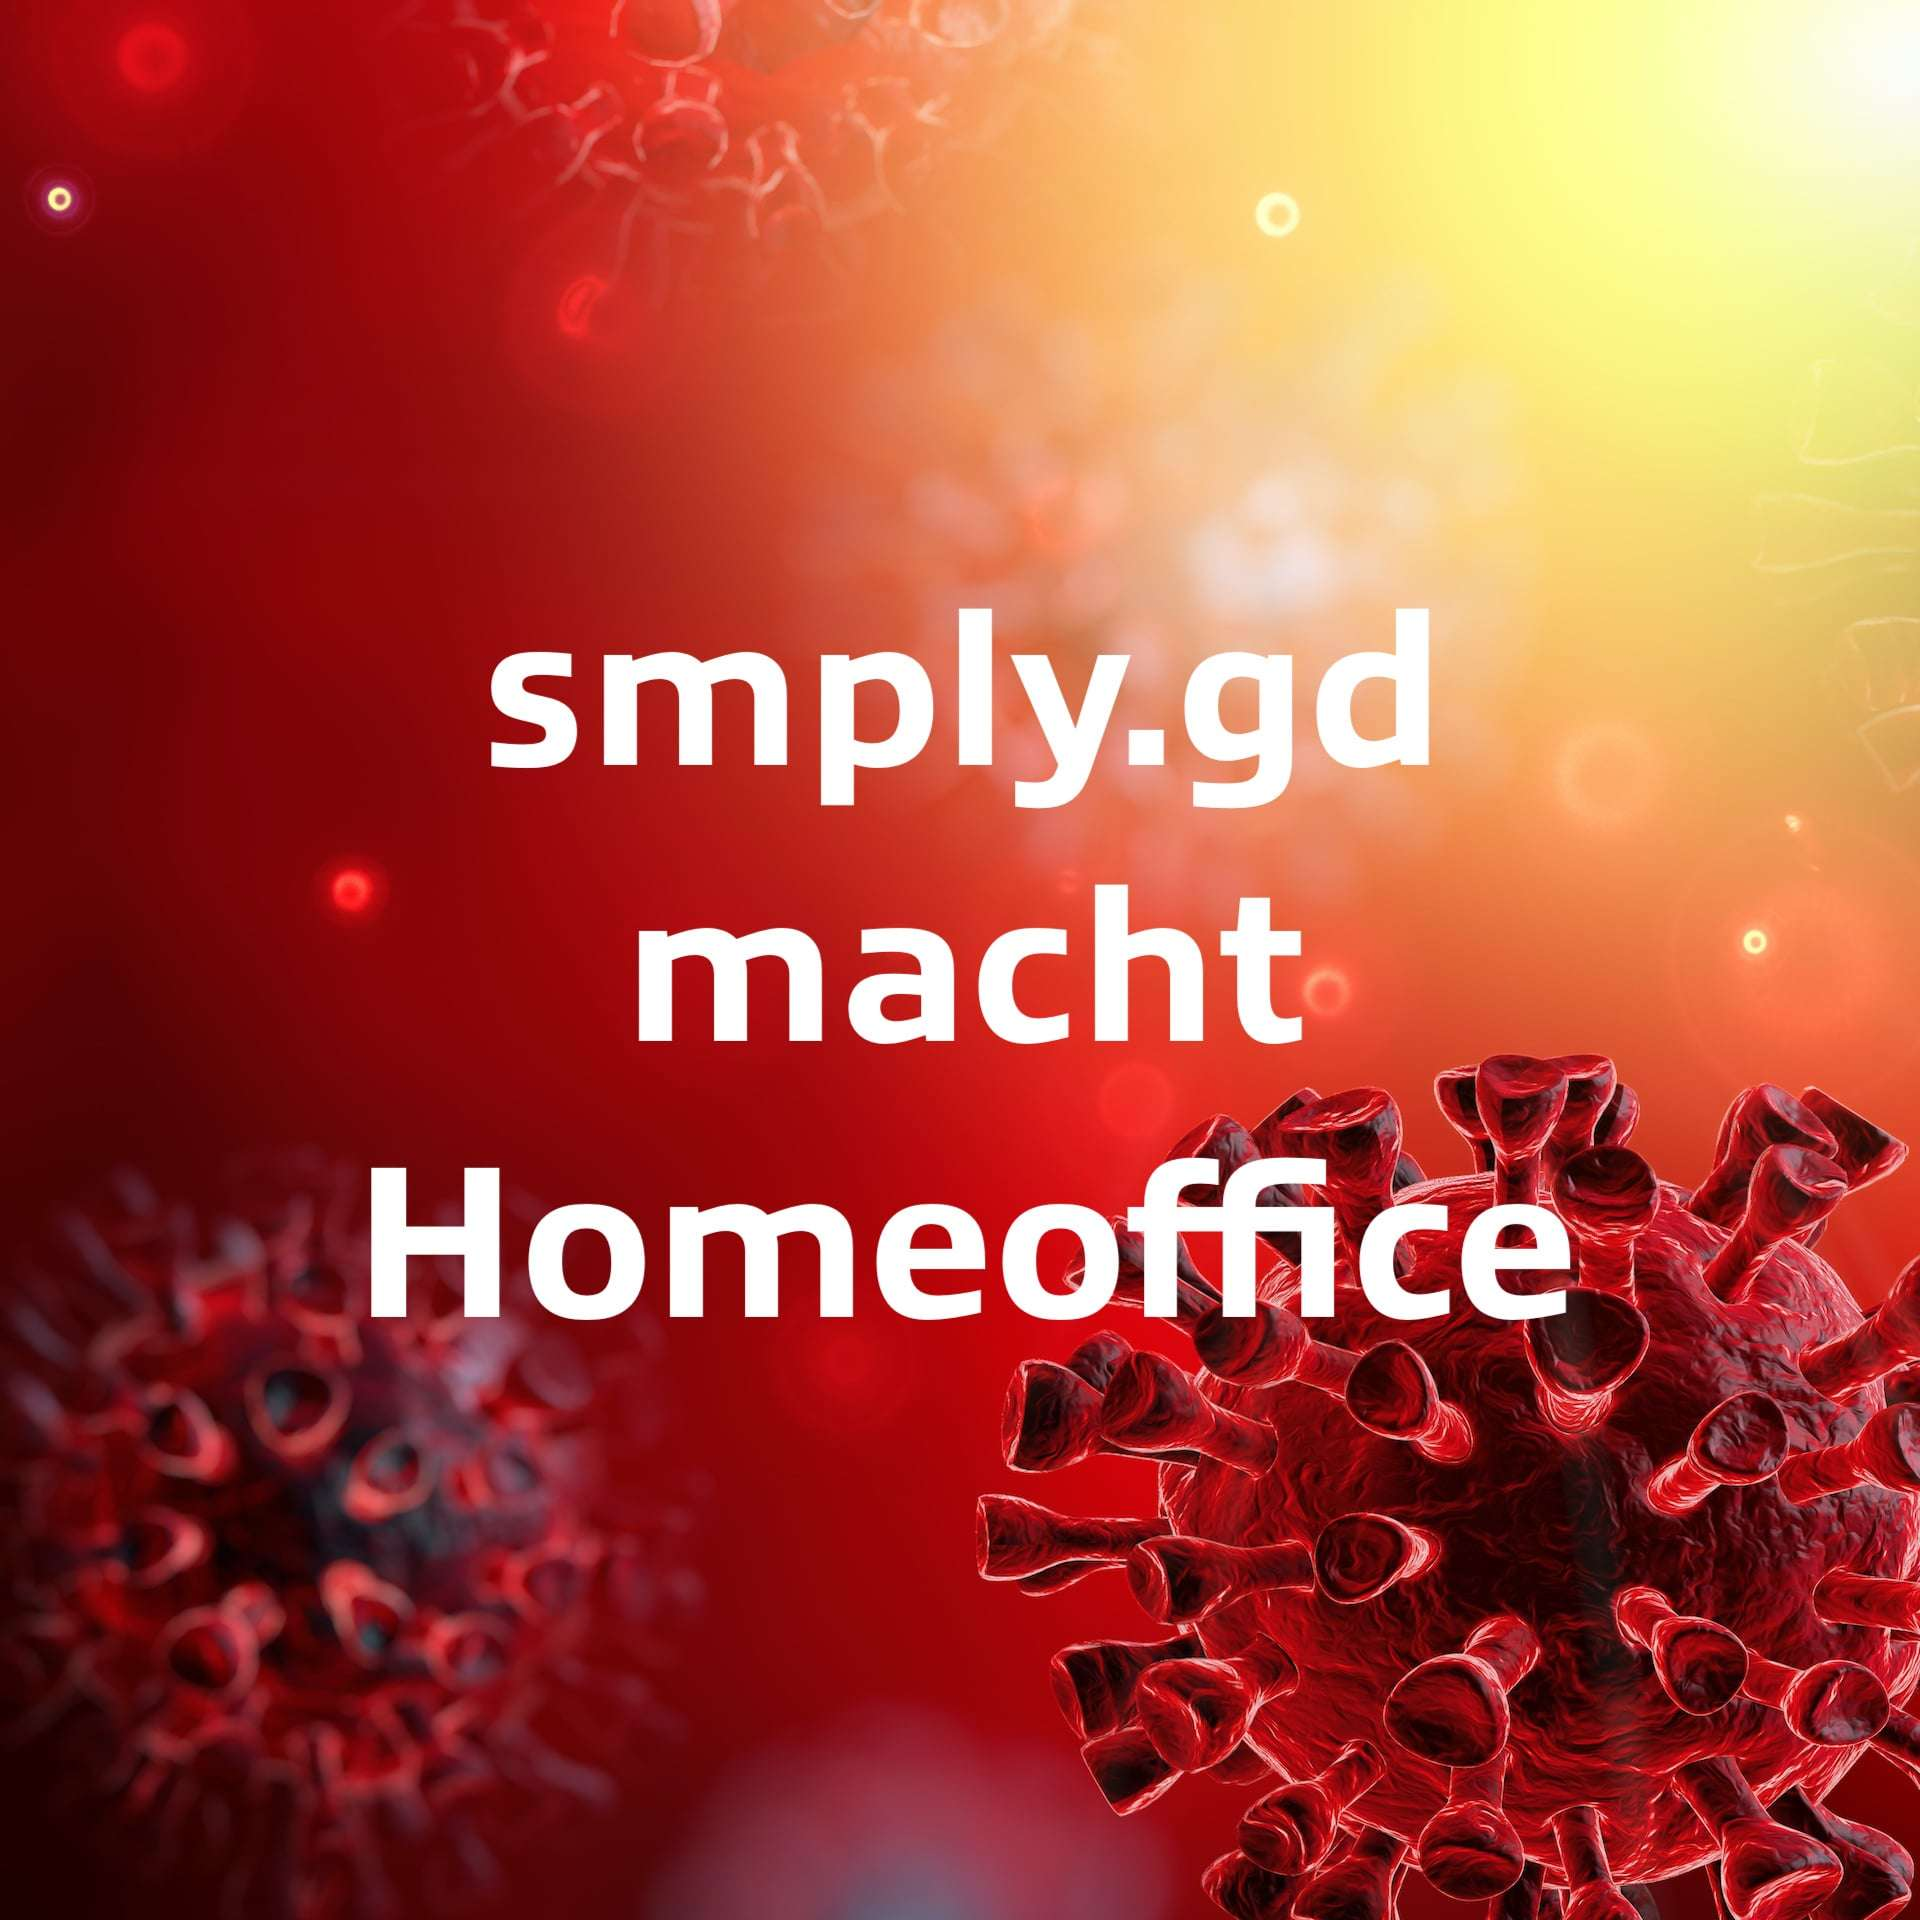 smply.gd macht Homeoffice